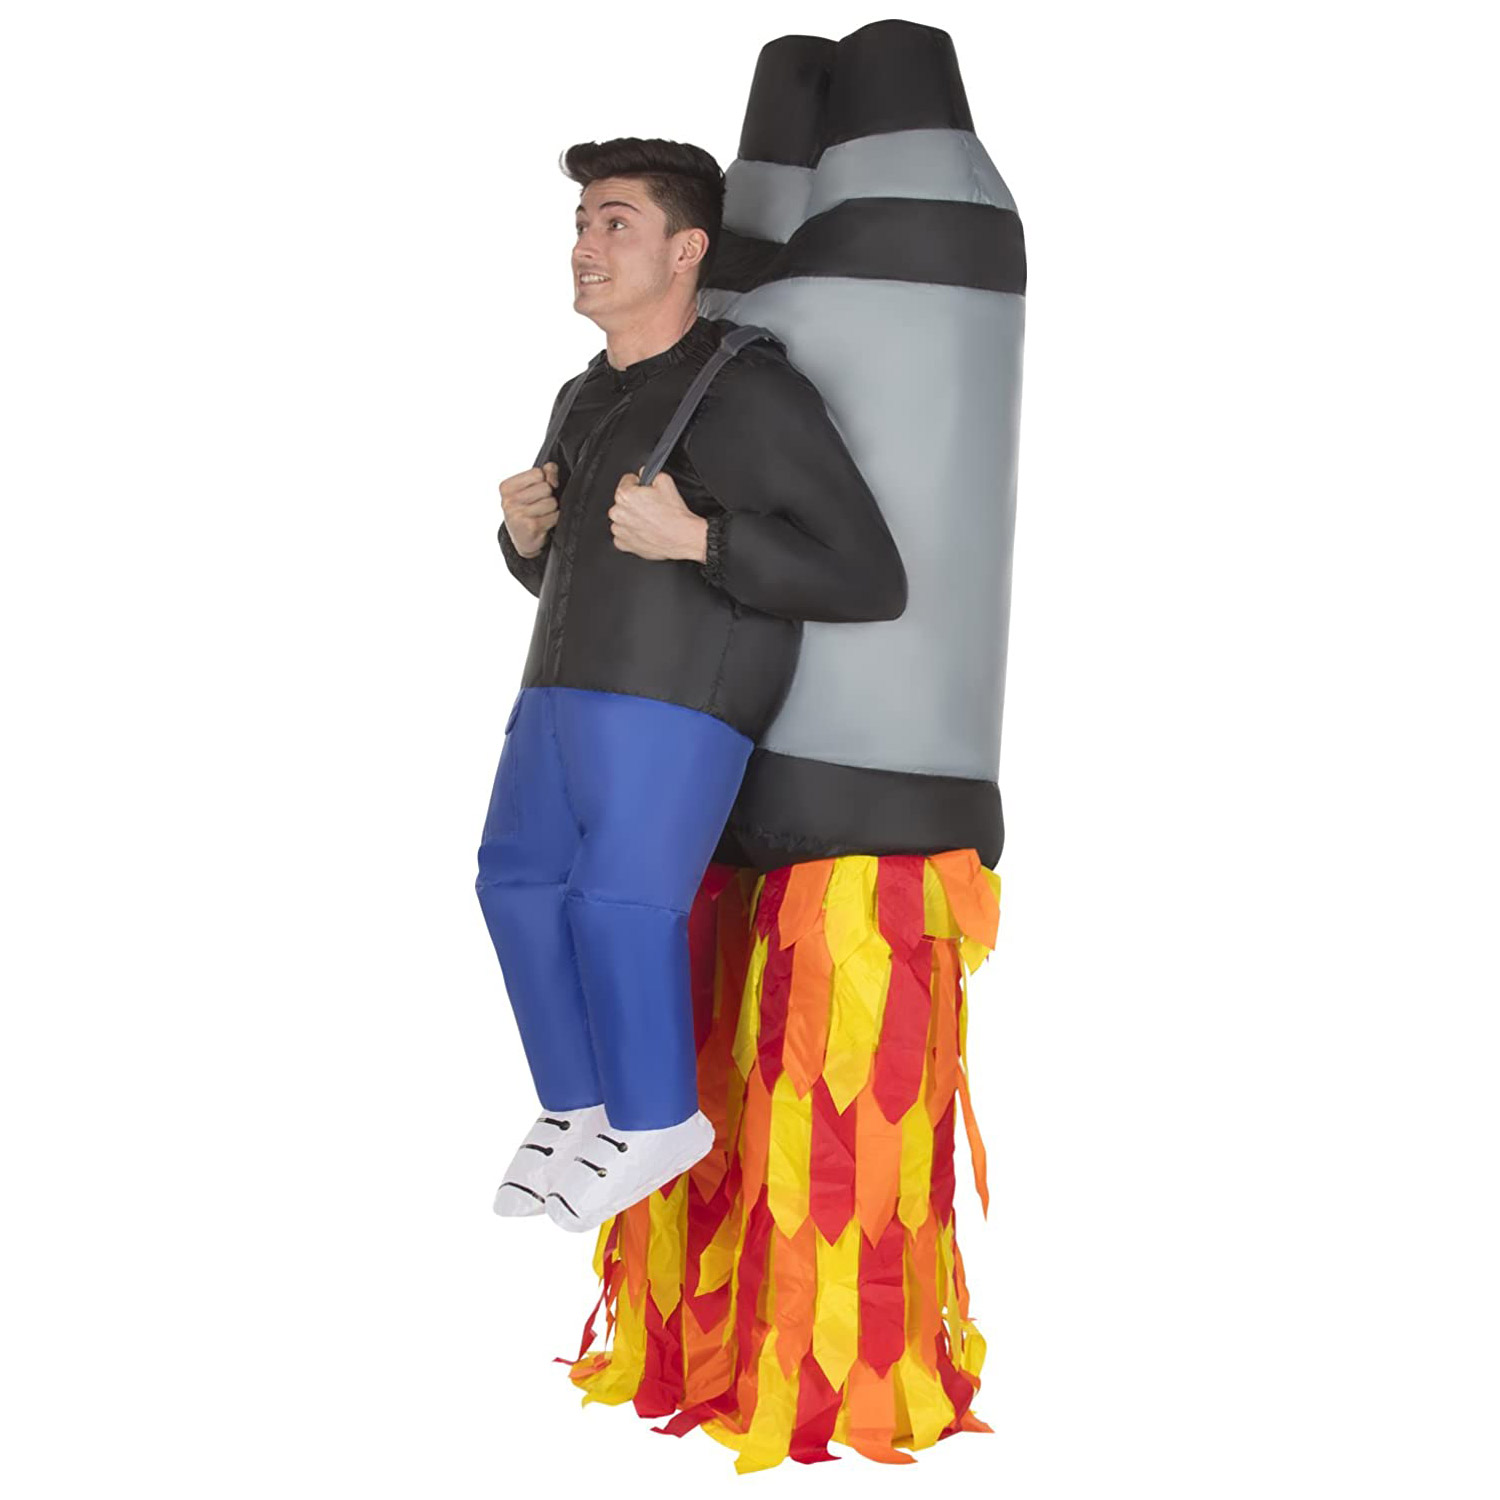 Unisex Adult Jet Pack Fancy Dress Costume Fake Legs Rocket Party Outfit Fits All